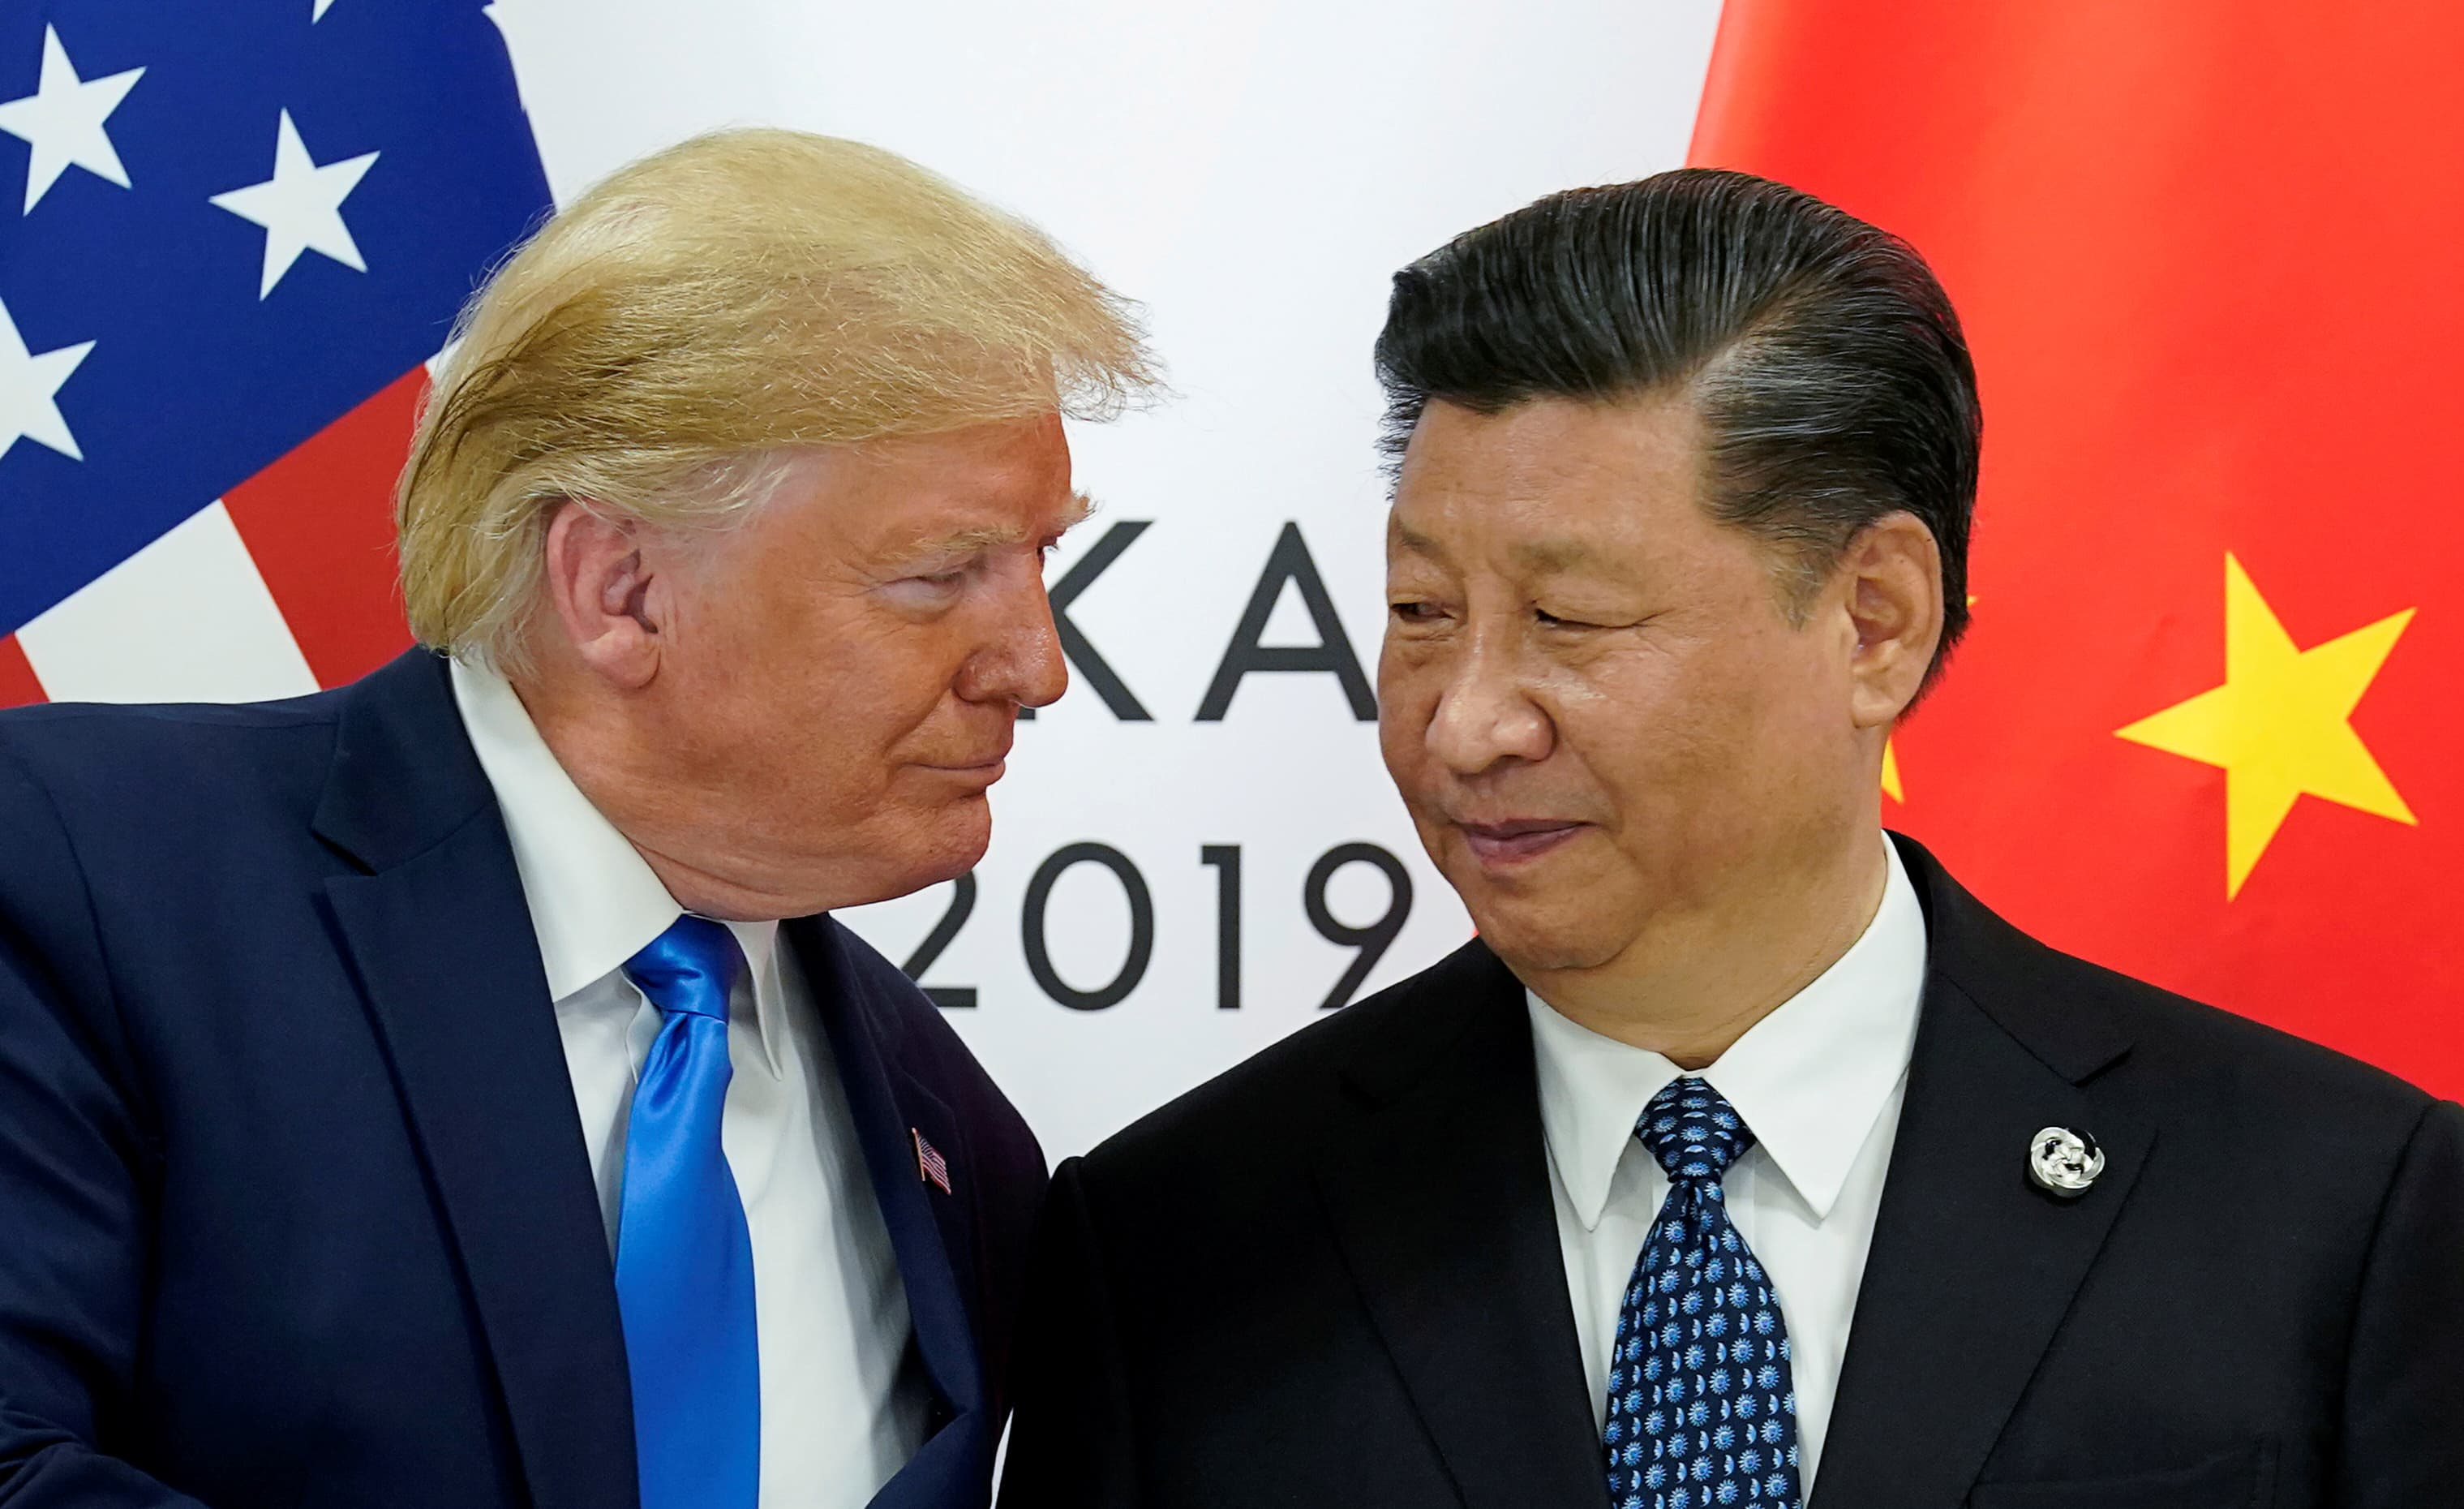 China is reportedly reluctant to agree to a broad US trade deal with talks set to restart